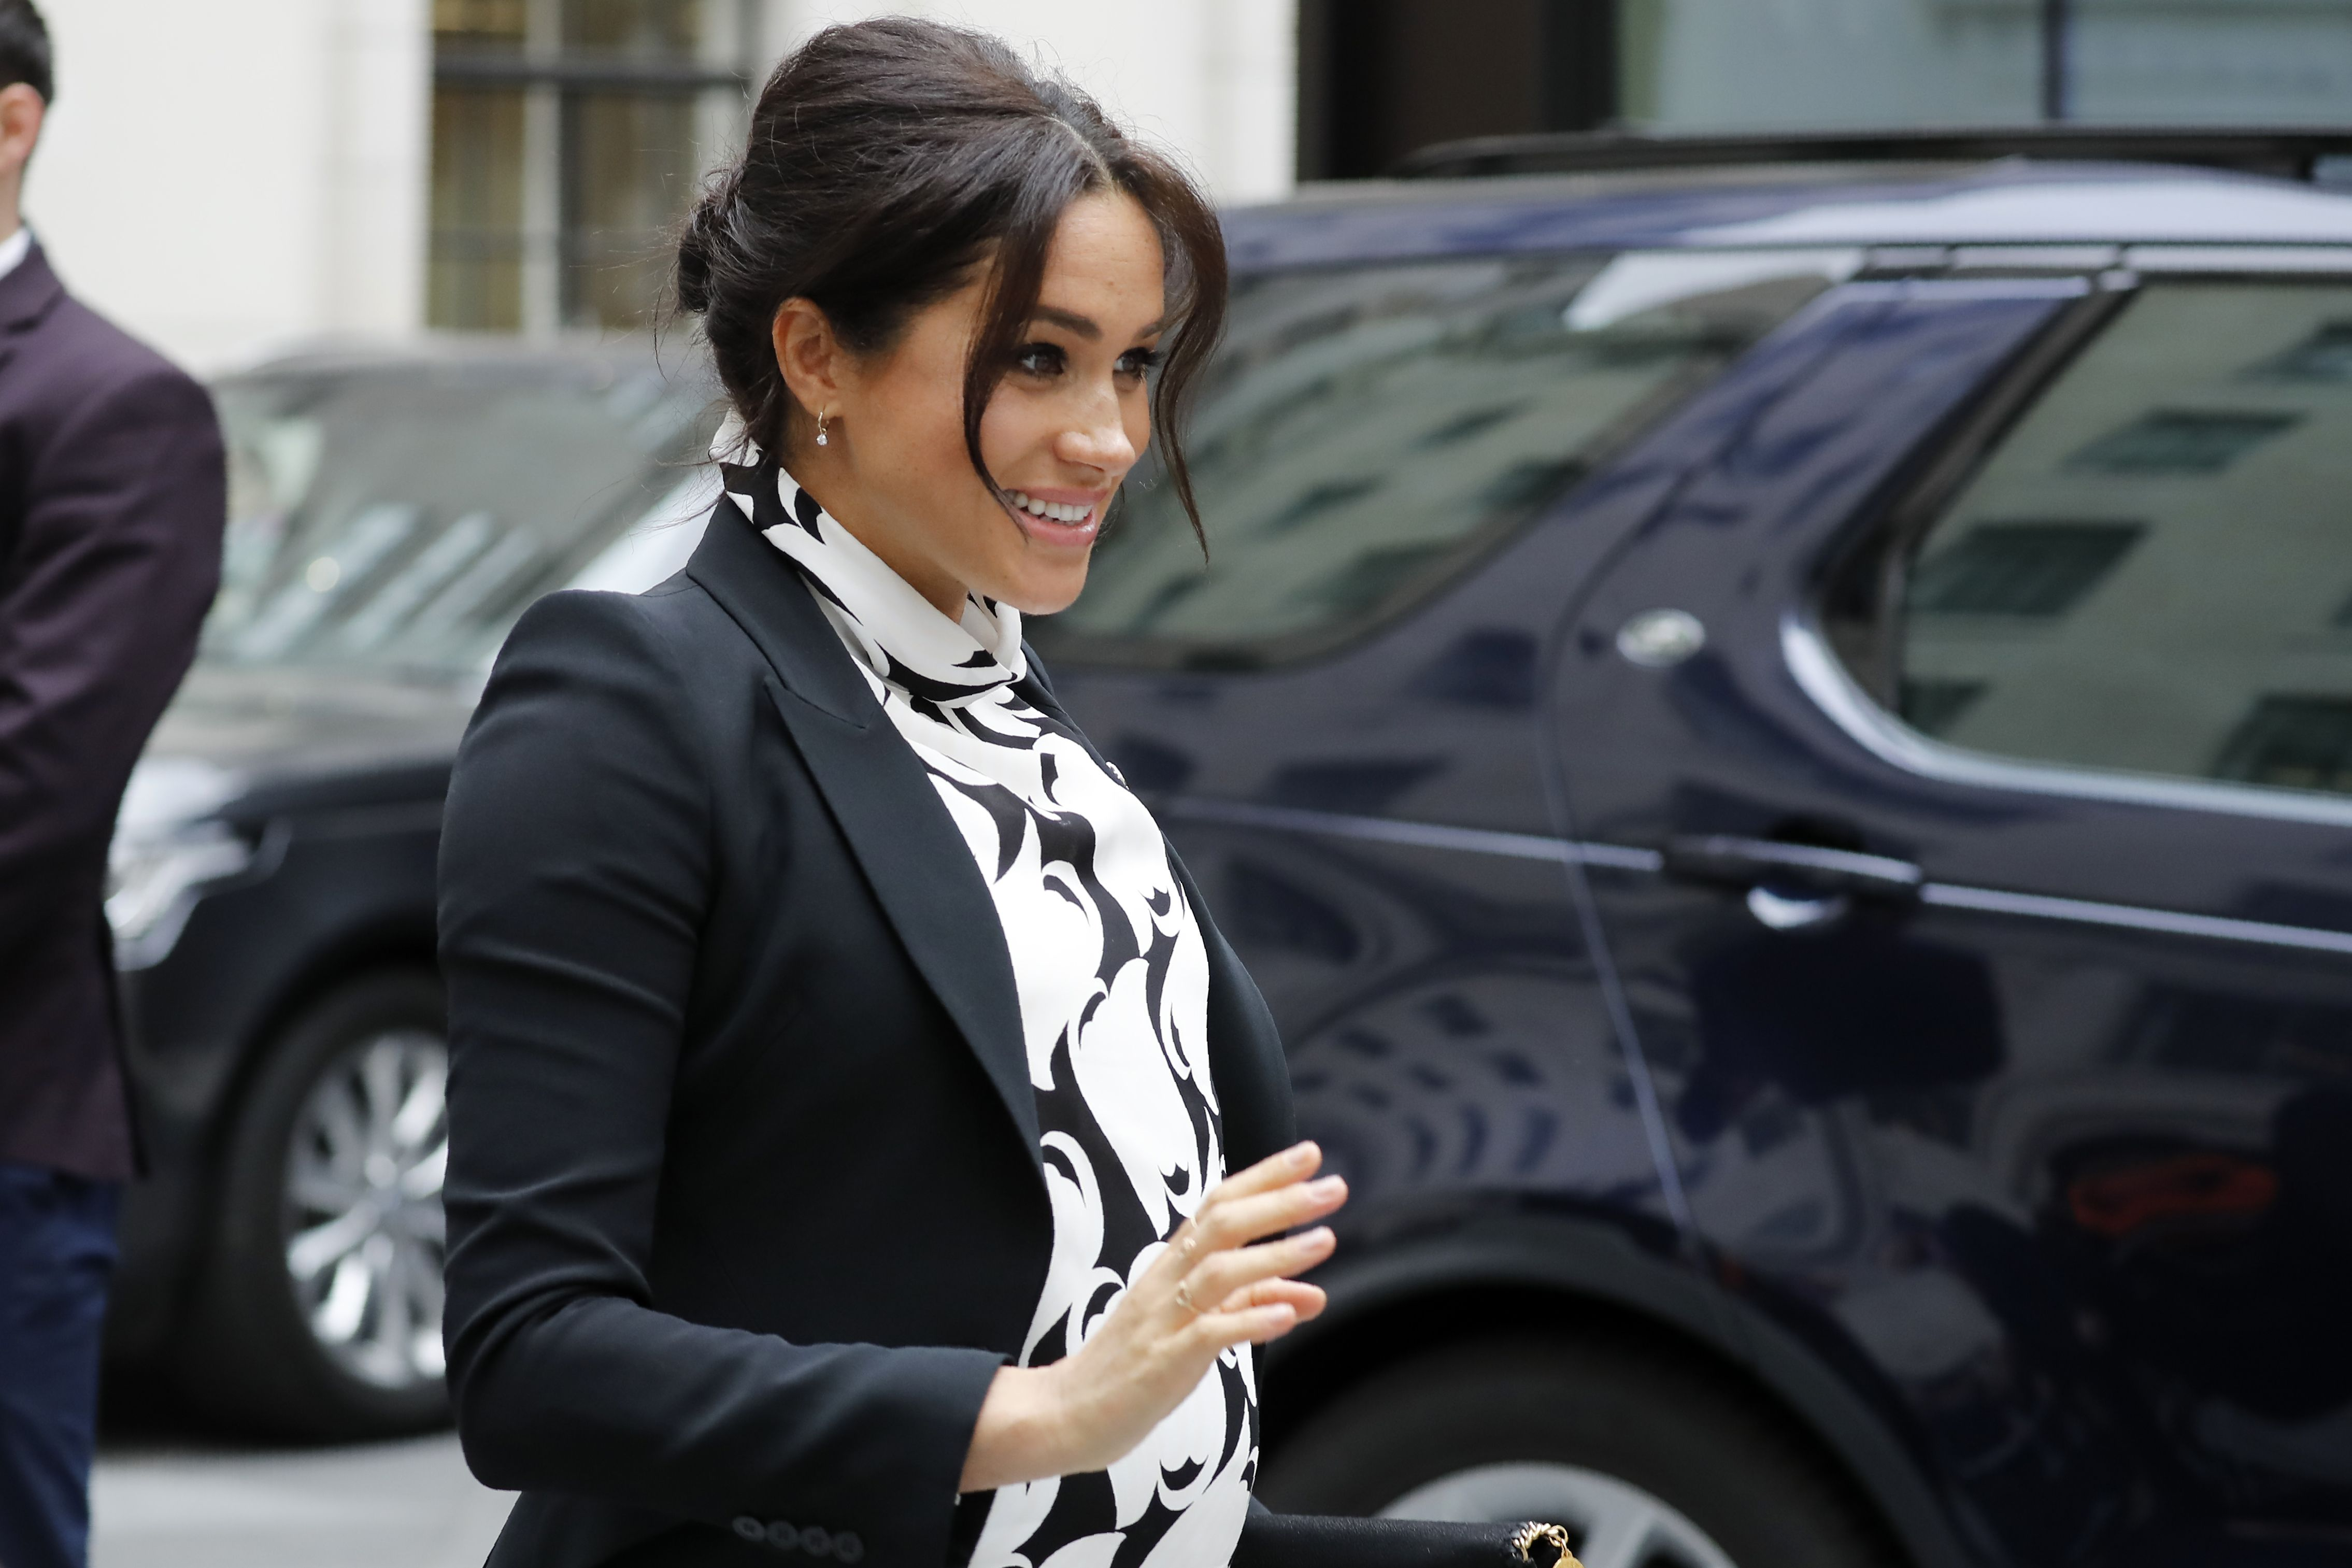 Britain's Meghan, Duchess of Sussex leaves after participating in a panel discussion convened by the Queen's Commonwealth Trust to mark International Women's Day in London on March 8, 2019.